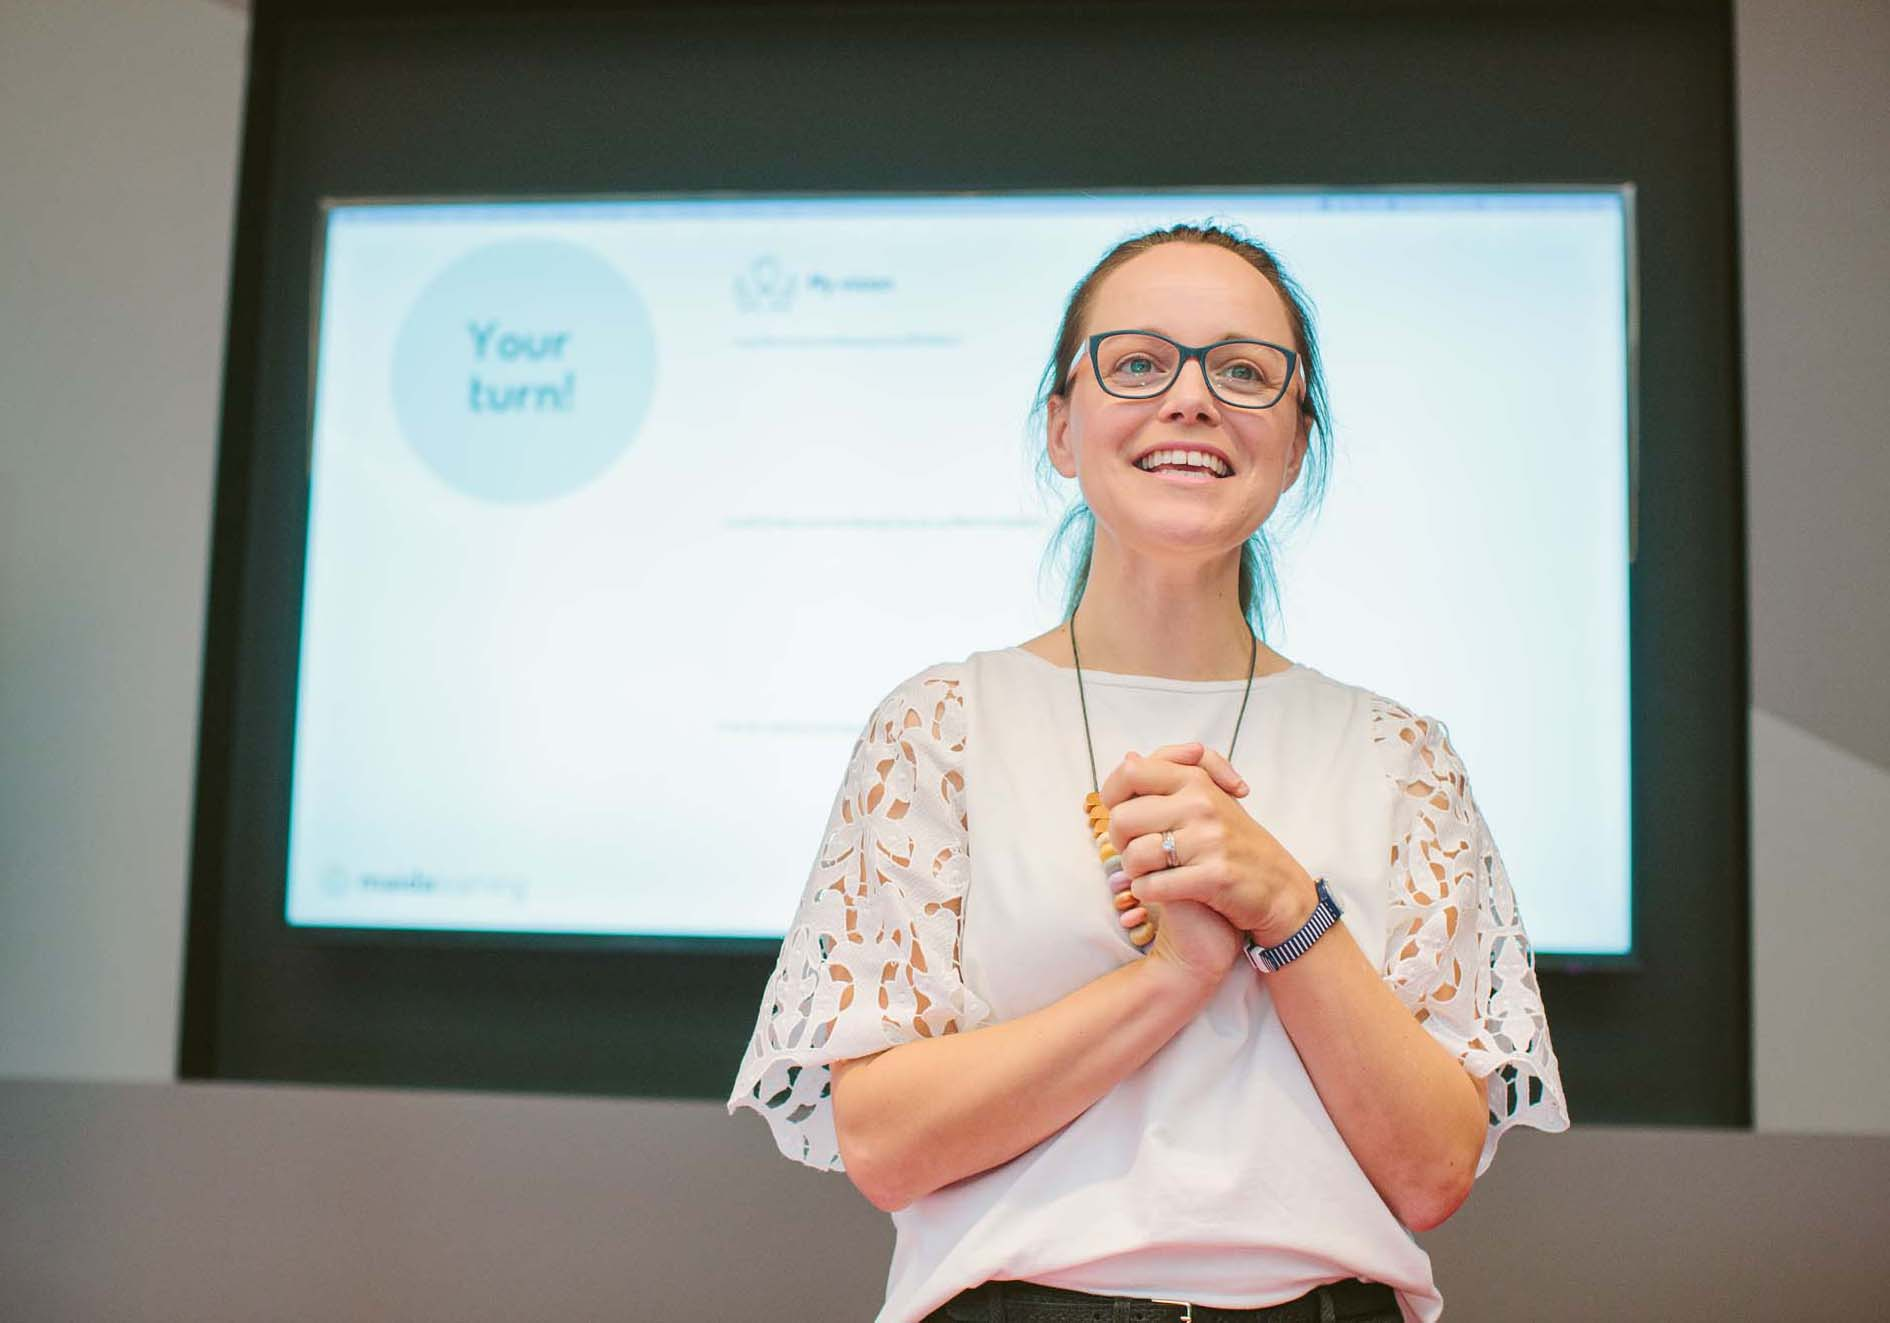 event photography woman presenting in front of slideshowS.jpg